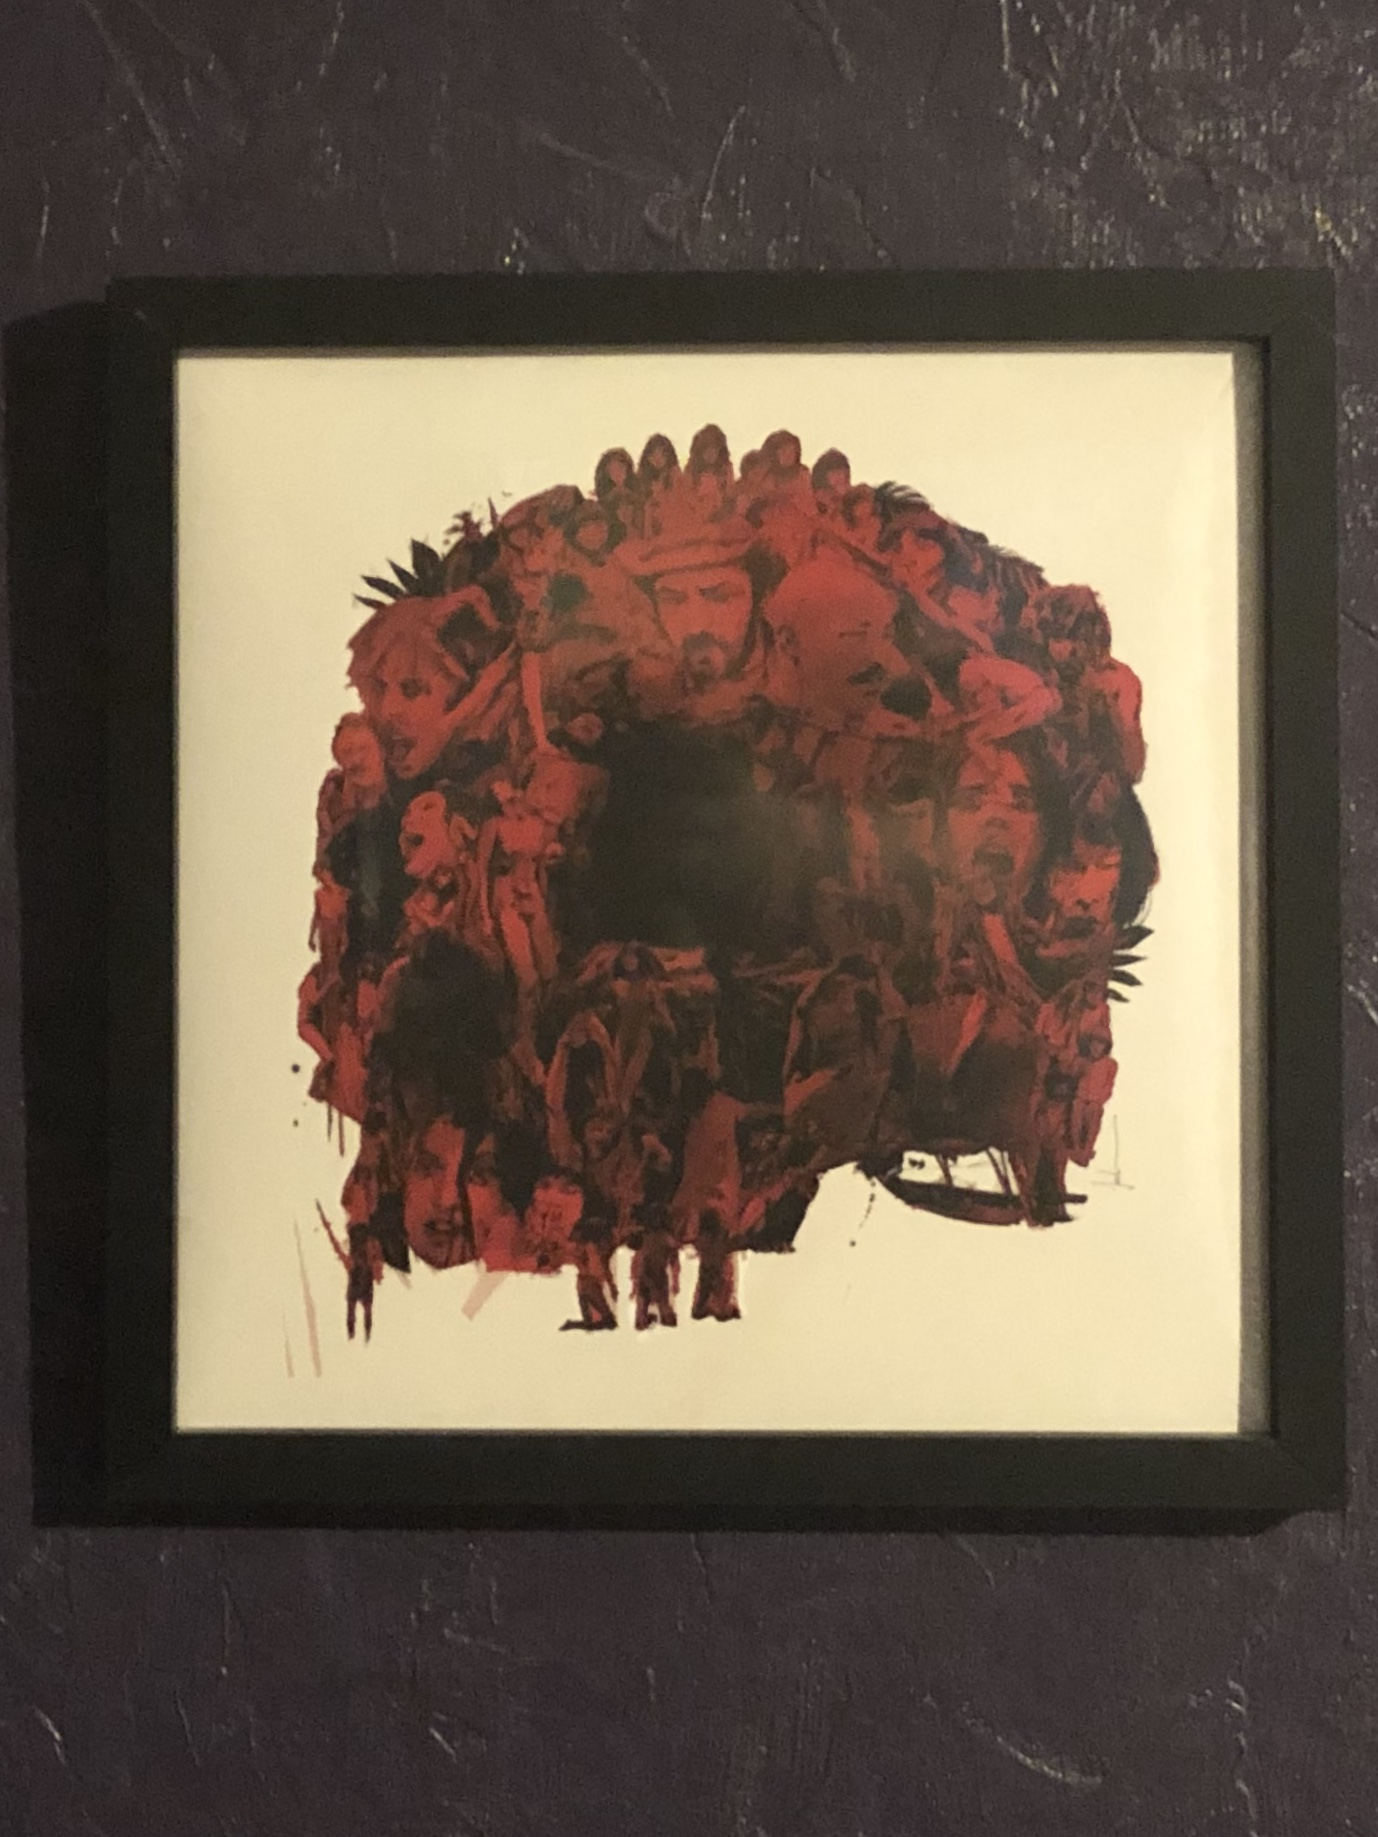 Jock art for Cannibal Holocaust soundtrack